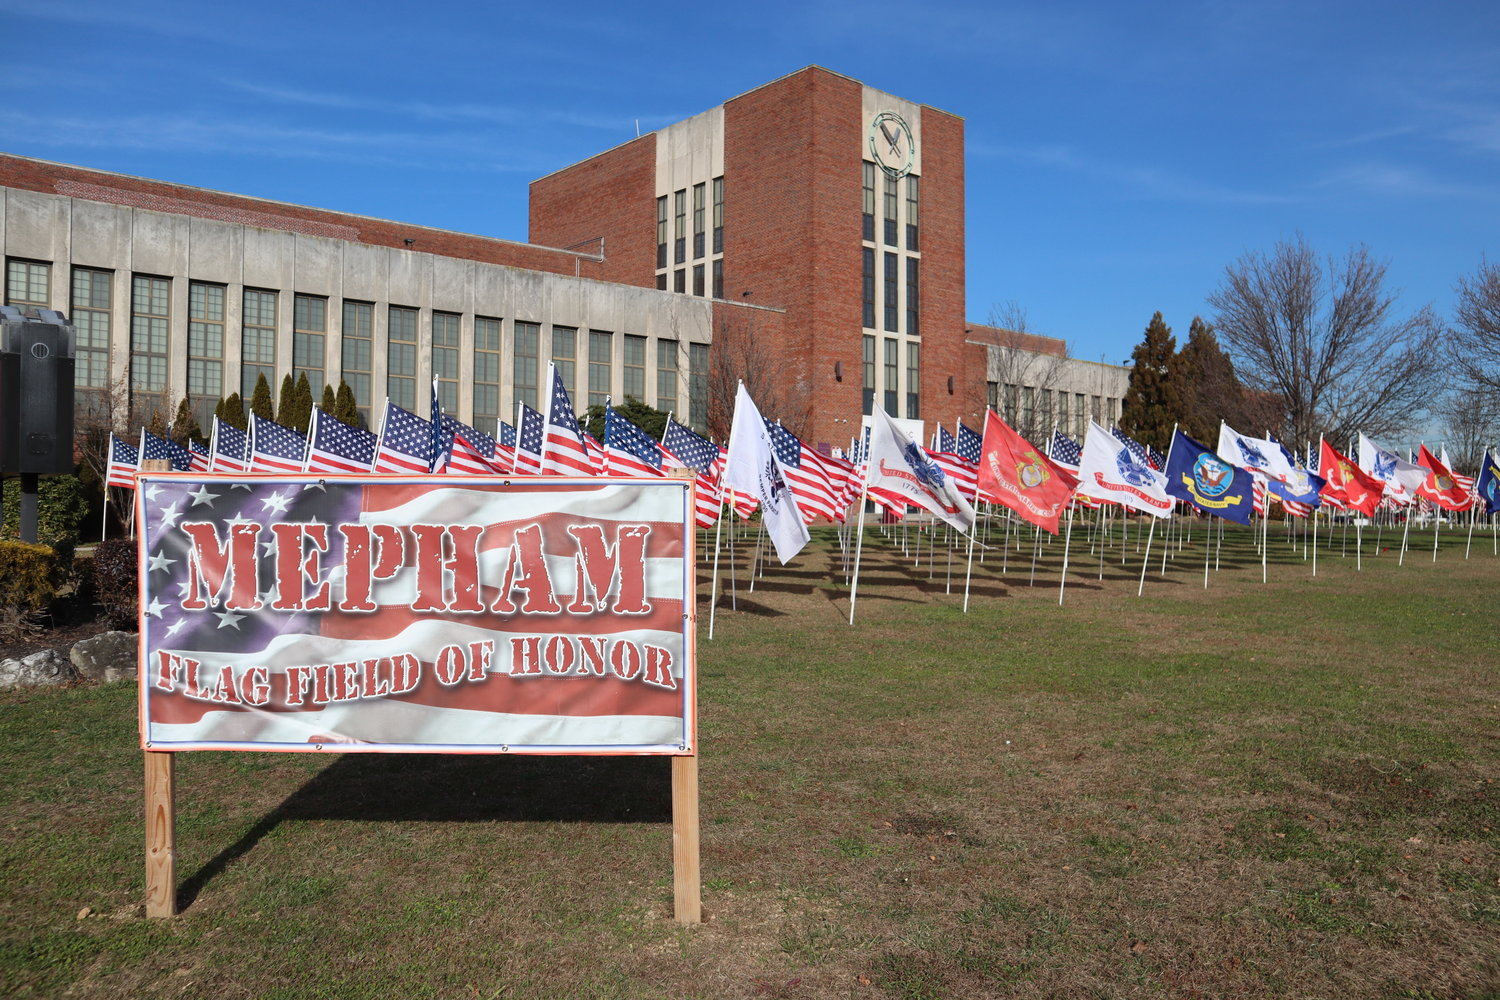 Mepham High's front lawn was covered with flags for its Flag Field of Honor.